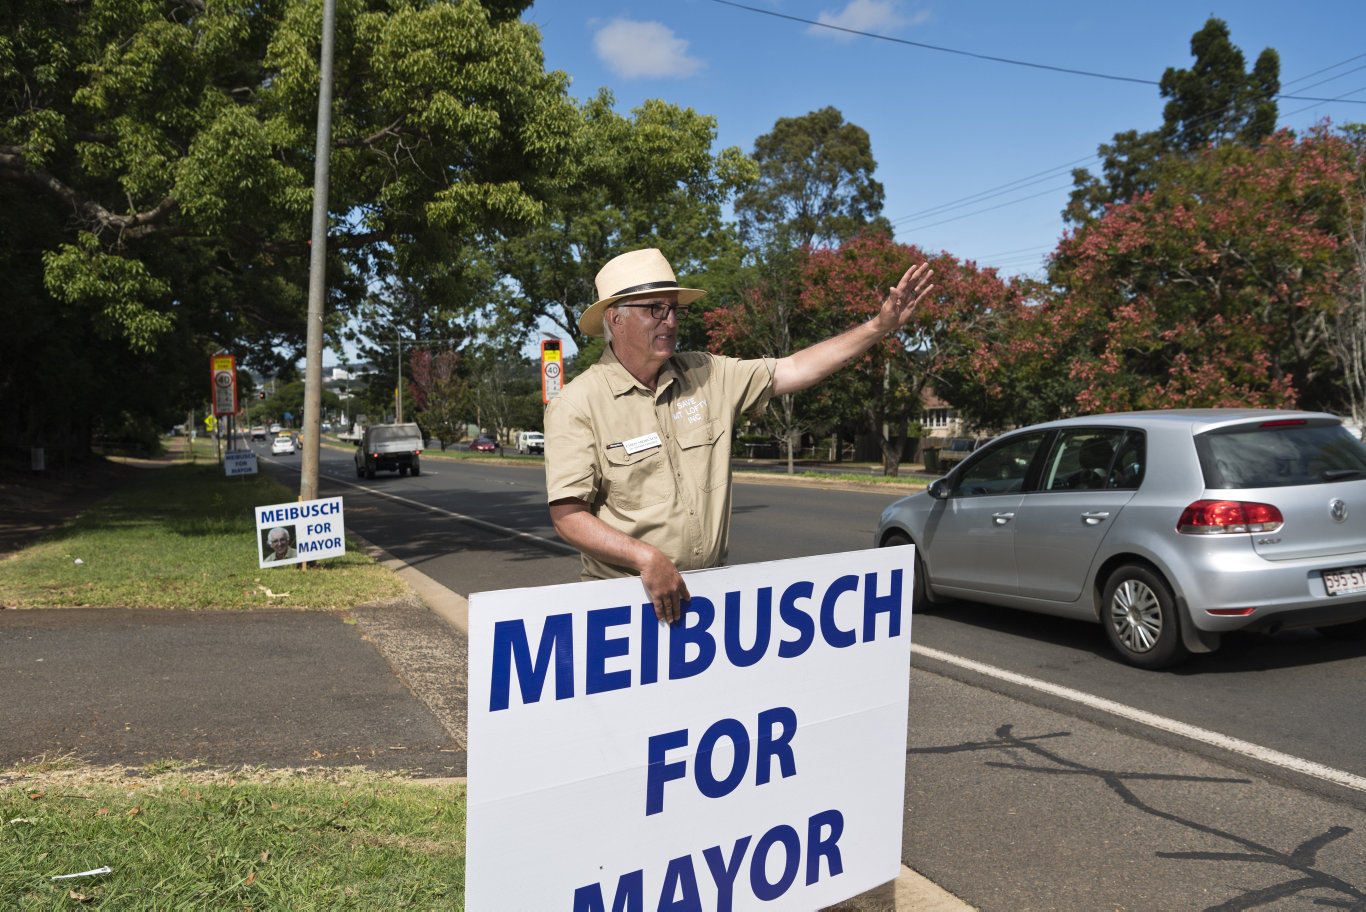 Mayoral candidate Chris Meibusch has conceded defeat.